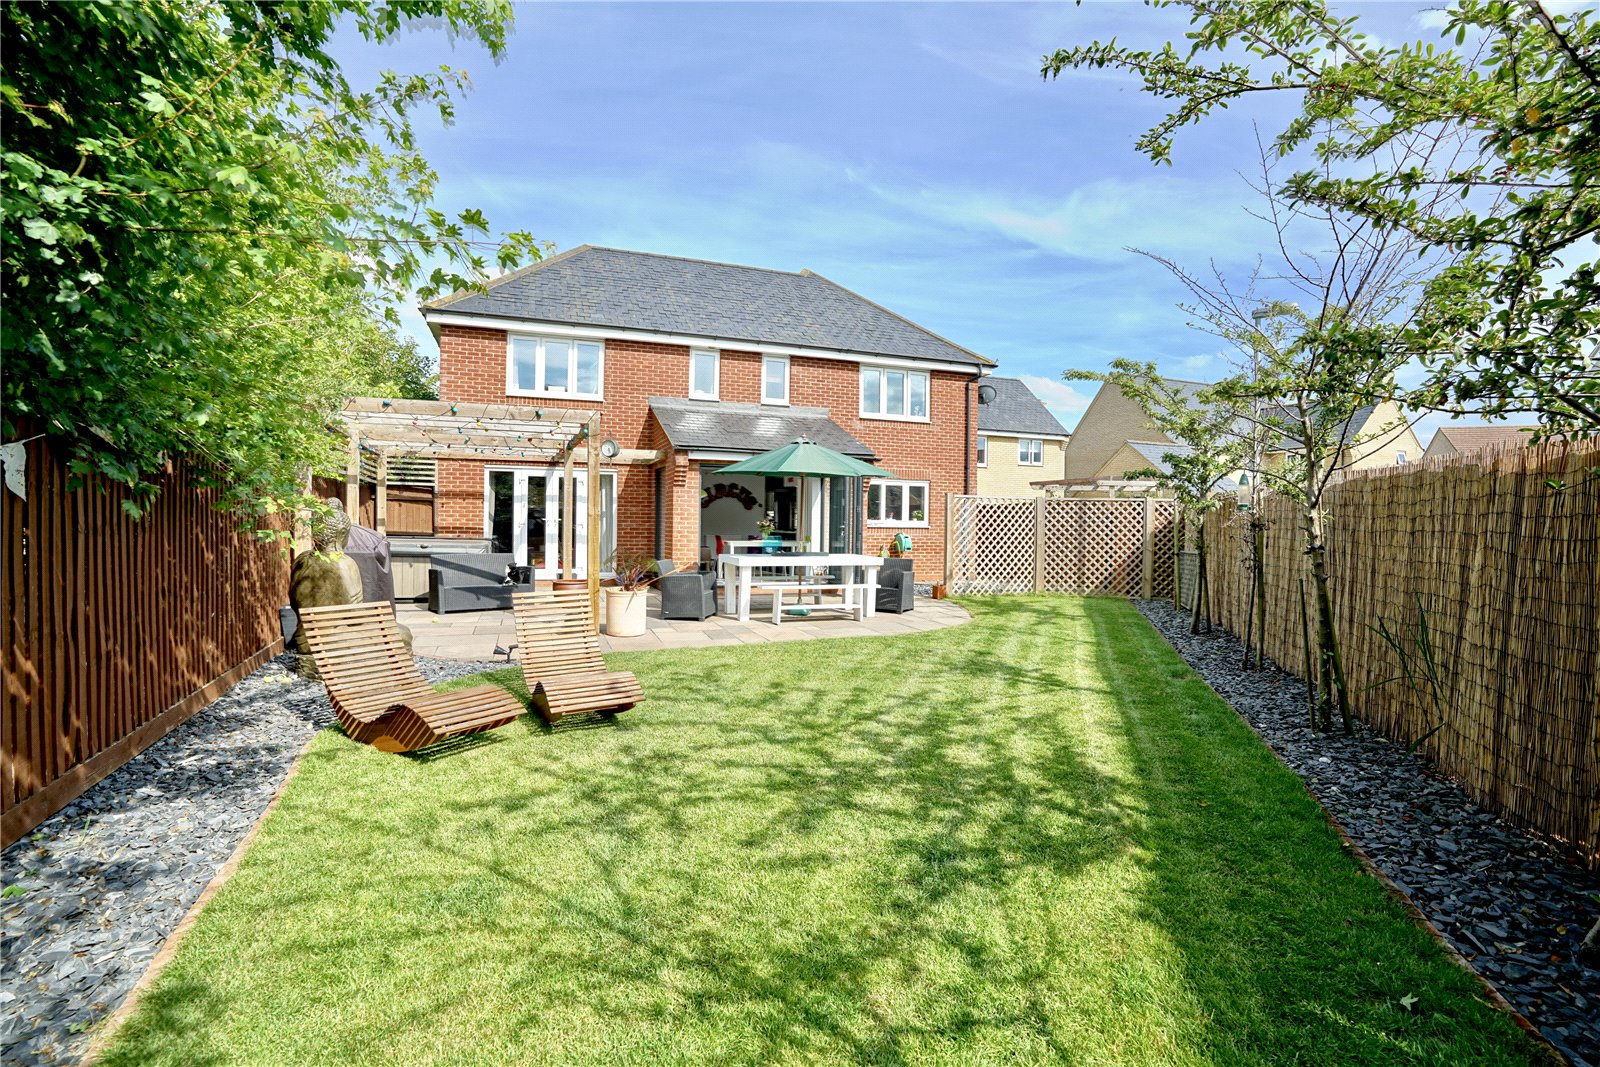 5 bed house for sale in Lannesbury Crescent, St. Neots  - Property Image 16